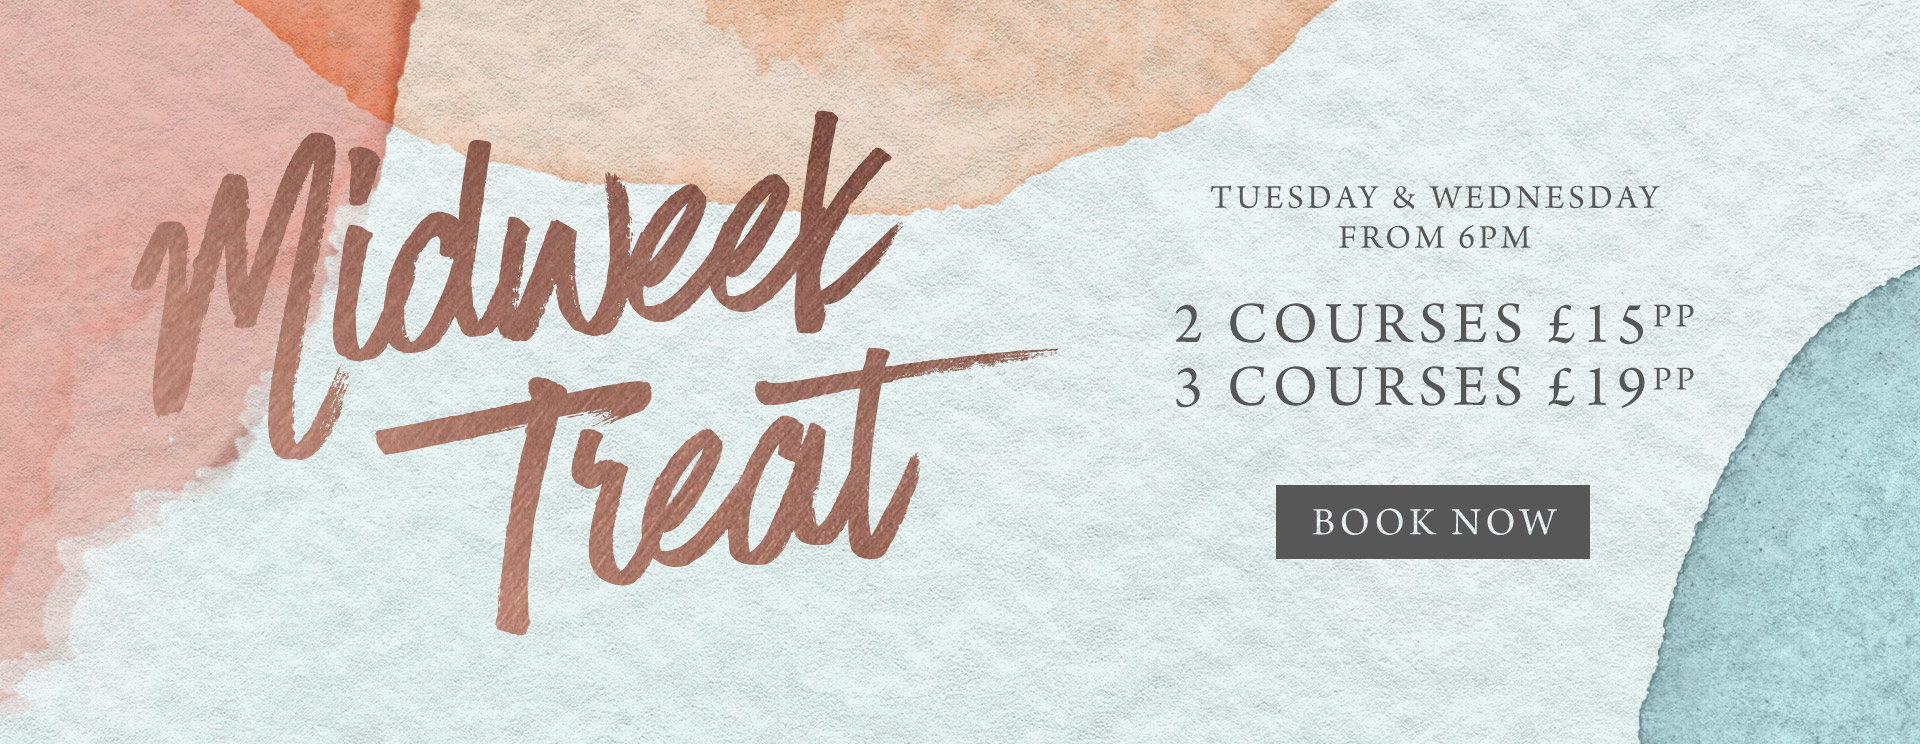 Midweek treat at The Horseshoes - Book now